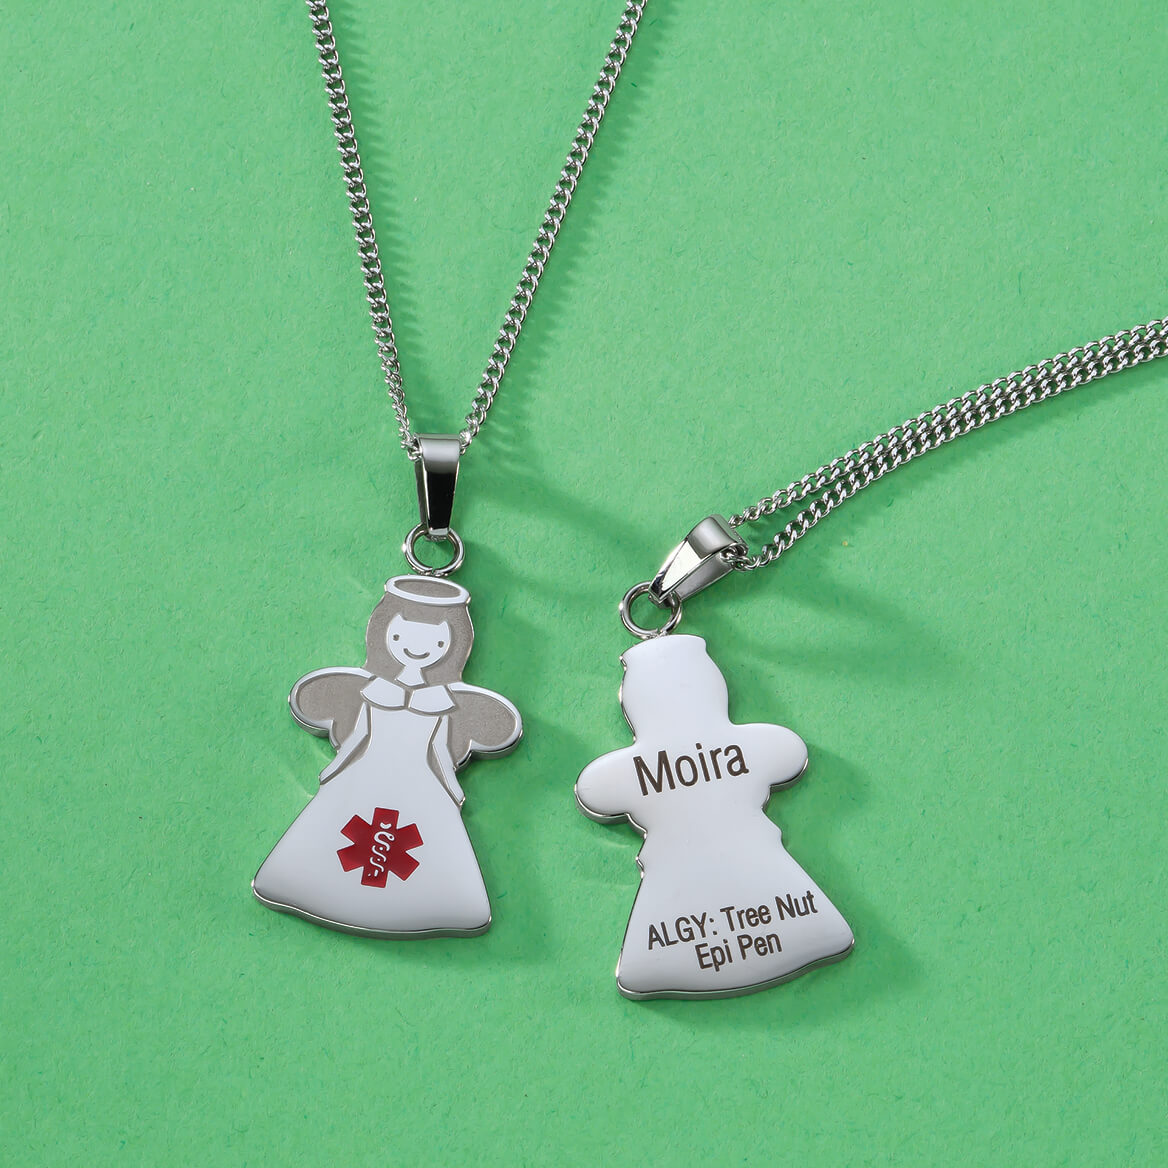 Personalized Angel Medical ID Necklace-369370